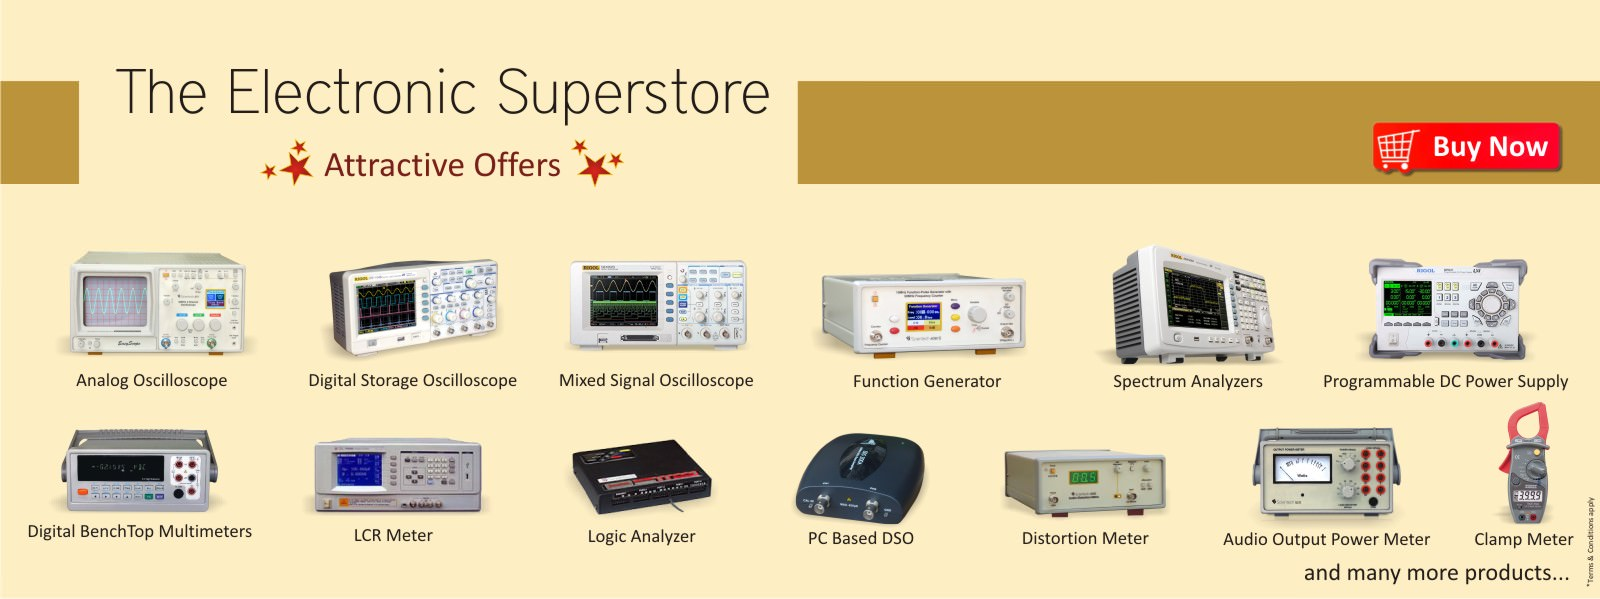 Scientech Oscilloscope, Rigol Digital Oscilloscope, Function Generator, LCR Meter, DC Power Supply Special Offer